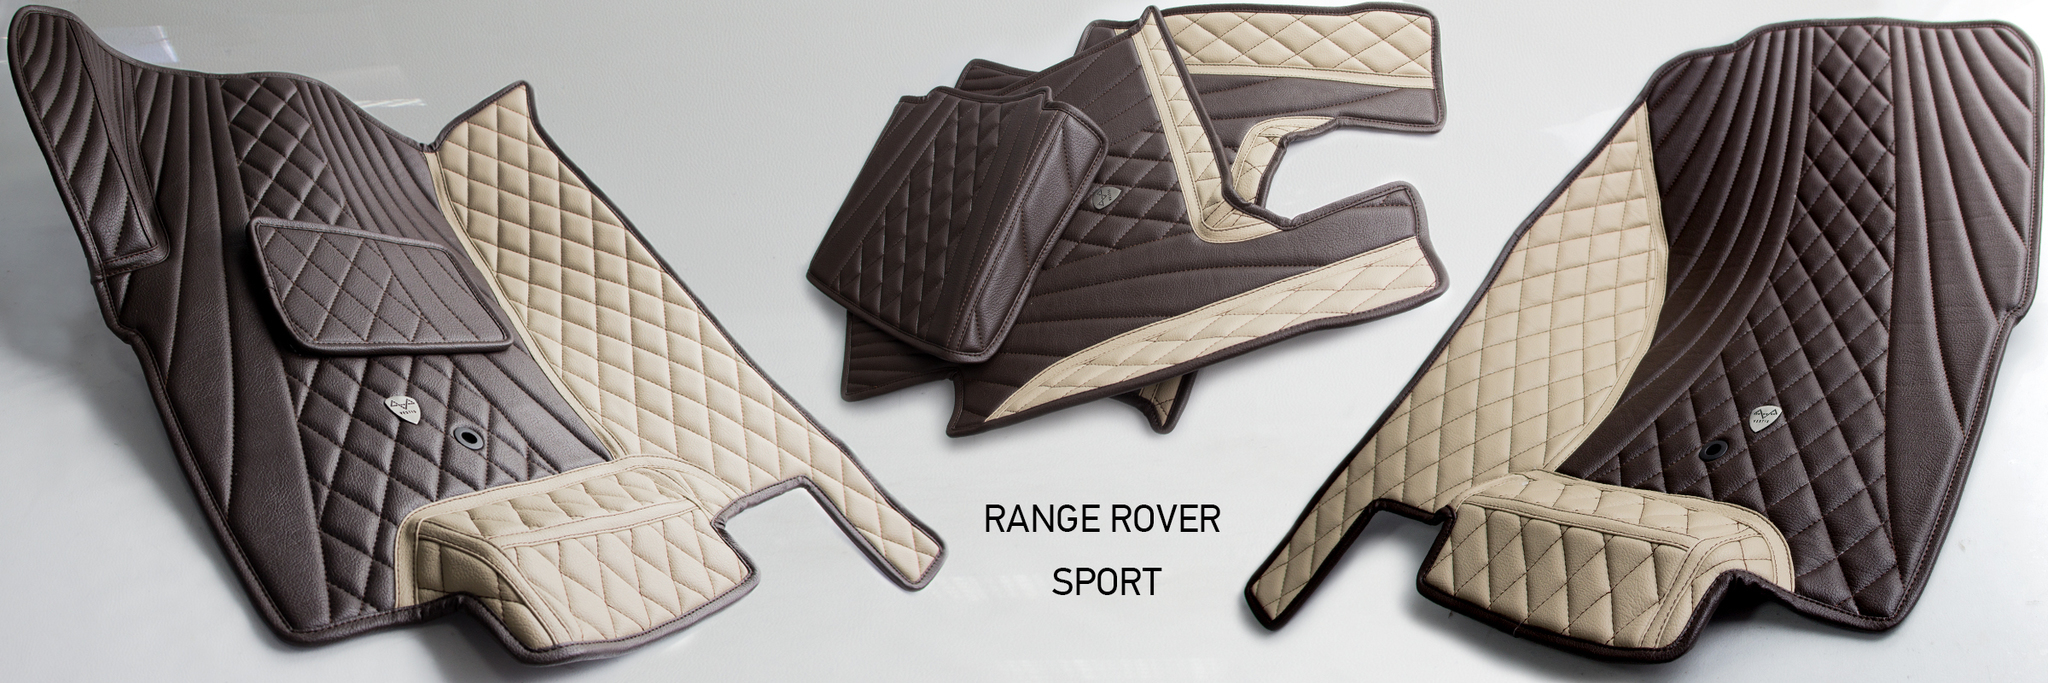 images-products-1-375-232989047-RANGE_ROVER__S.jpg